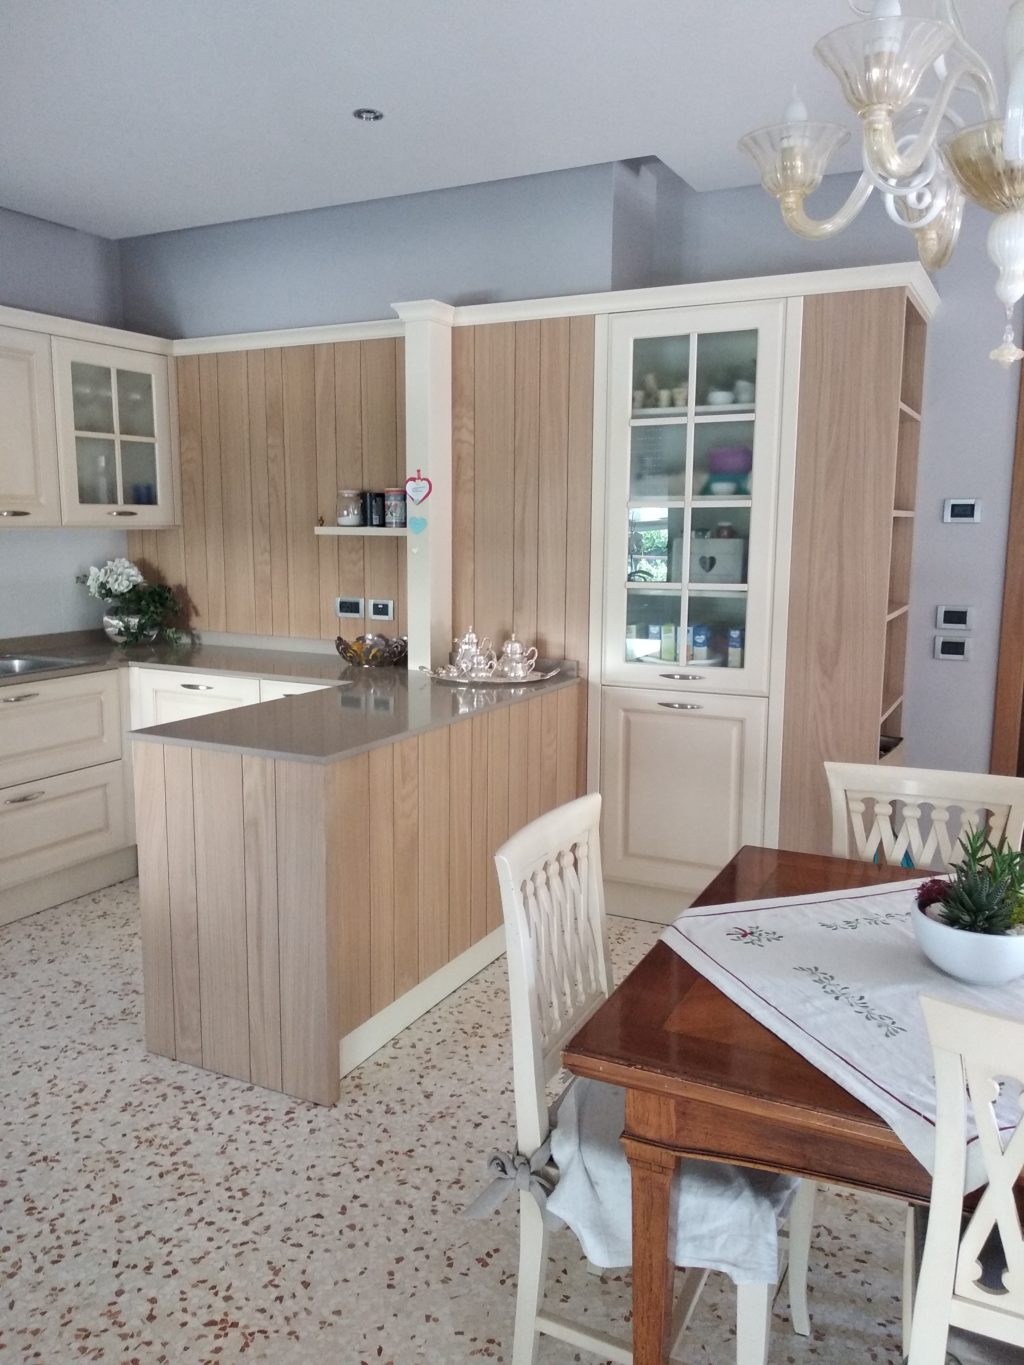 restyling-cucina-4